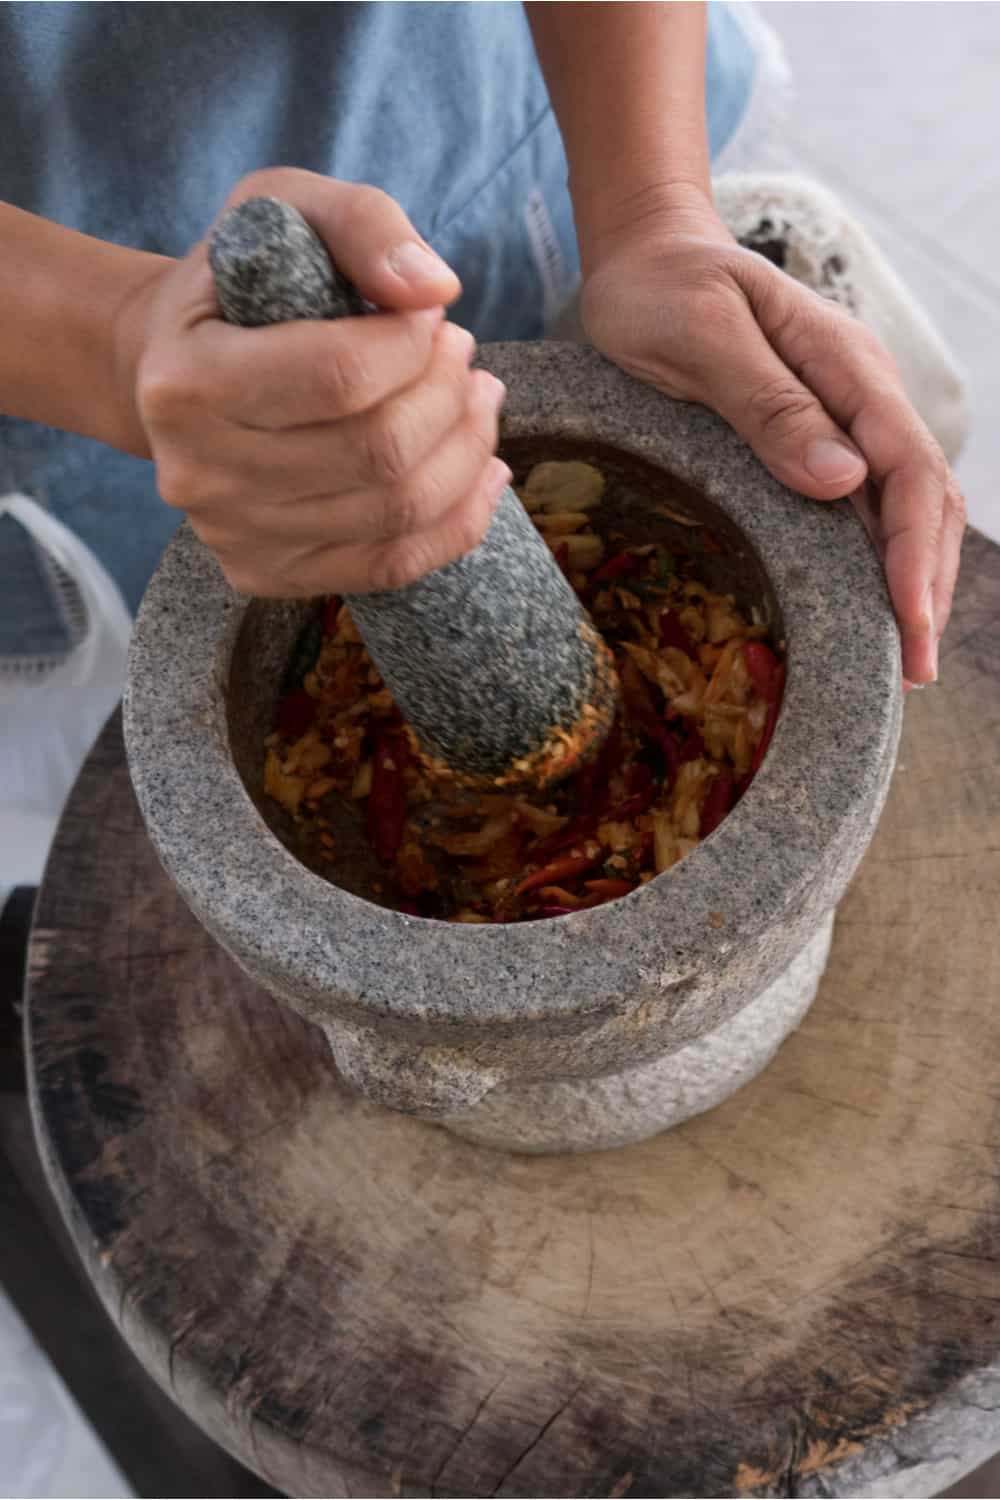 Picture Of Mortar And Pestle : picture, mortar, pestle, Homemade, Mortar, Pestle, Plans, Easily